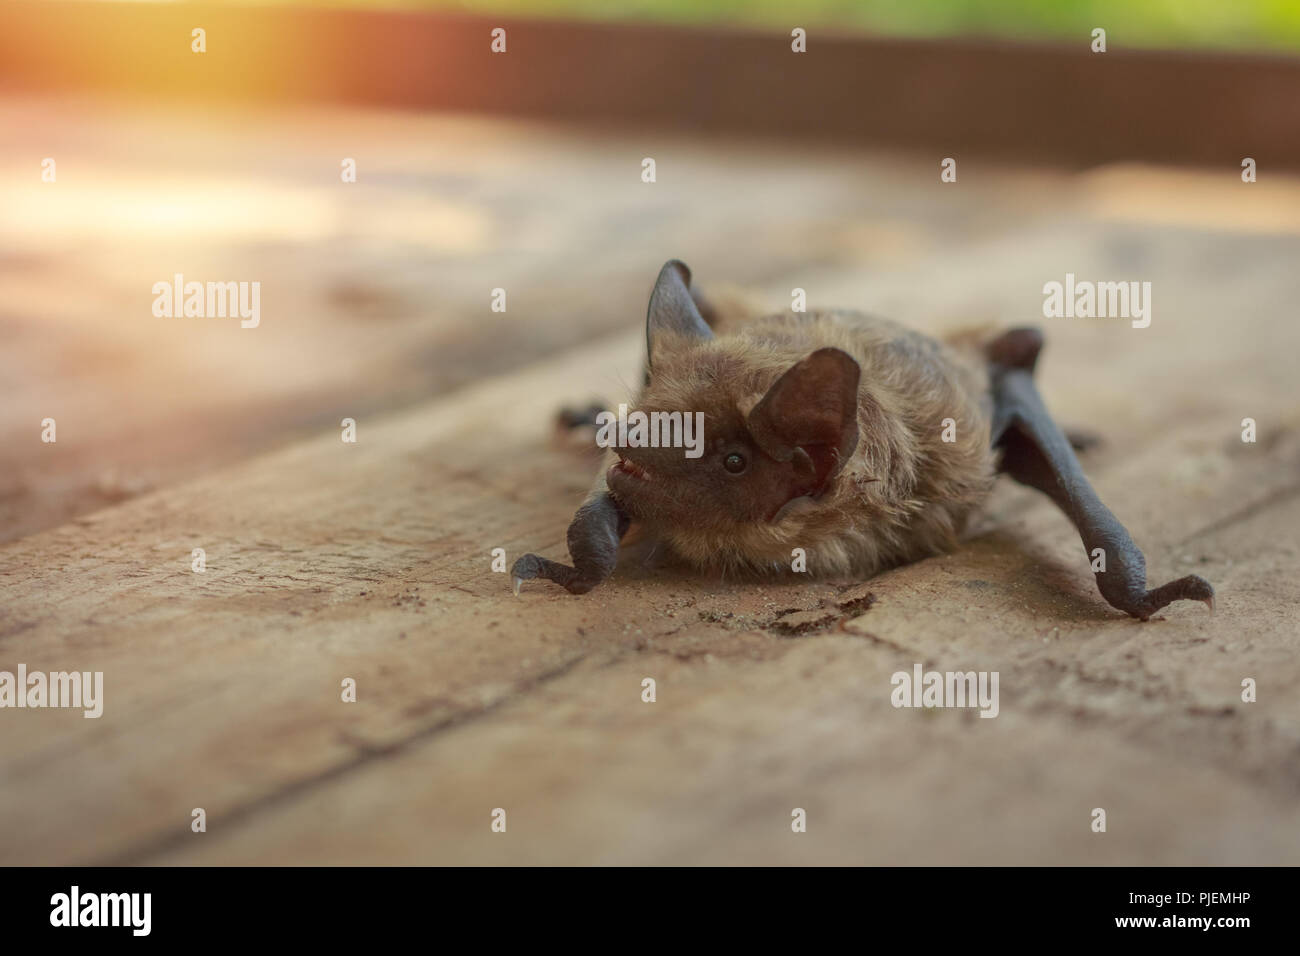 Muzzle Bat Close Up On A Wooden Background In Nature Stock Photo